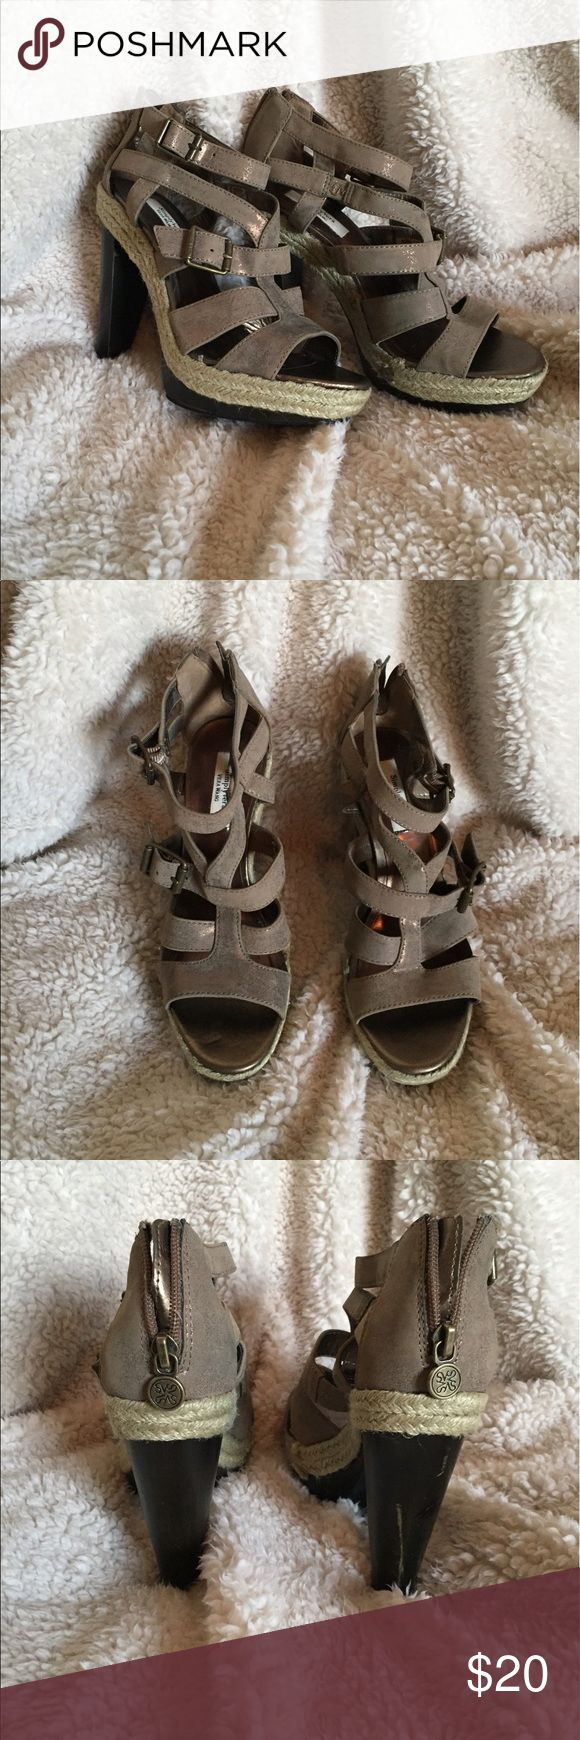 Shimmery Grey Simply Vera, Vera Wang Heels Simply Vera, shimmery grey, Strappy, double buckle, 5 inch heel, hardly worn, size 7, all man made material Simply Vera Vera Wang Shoes Heels